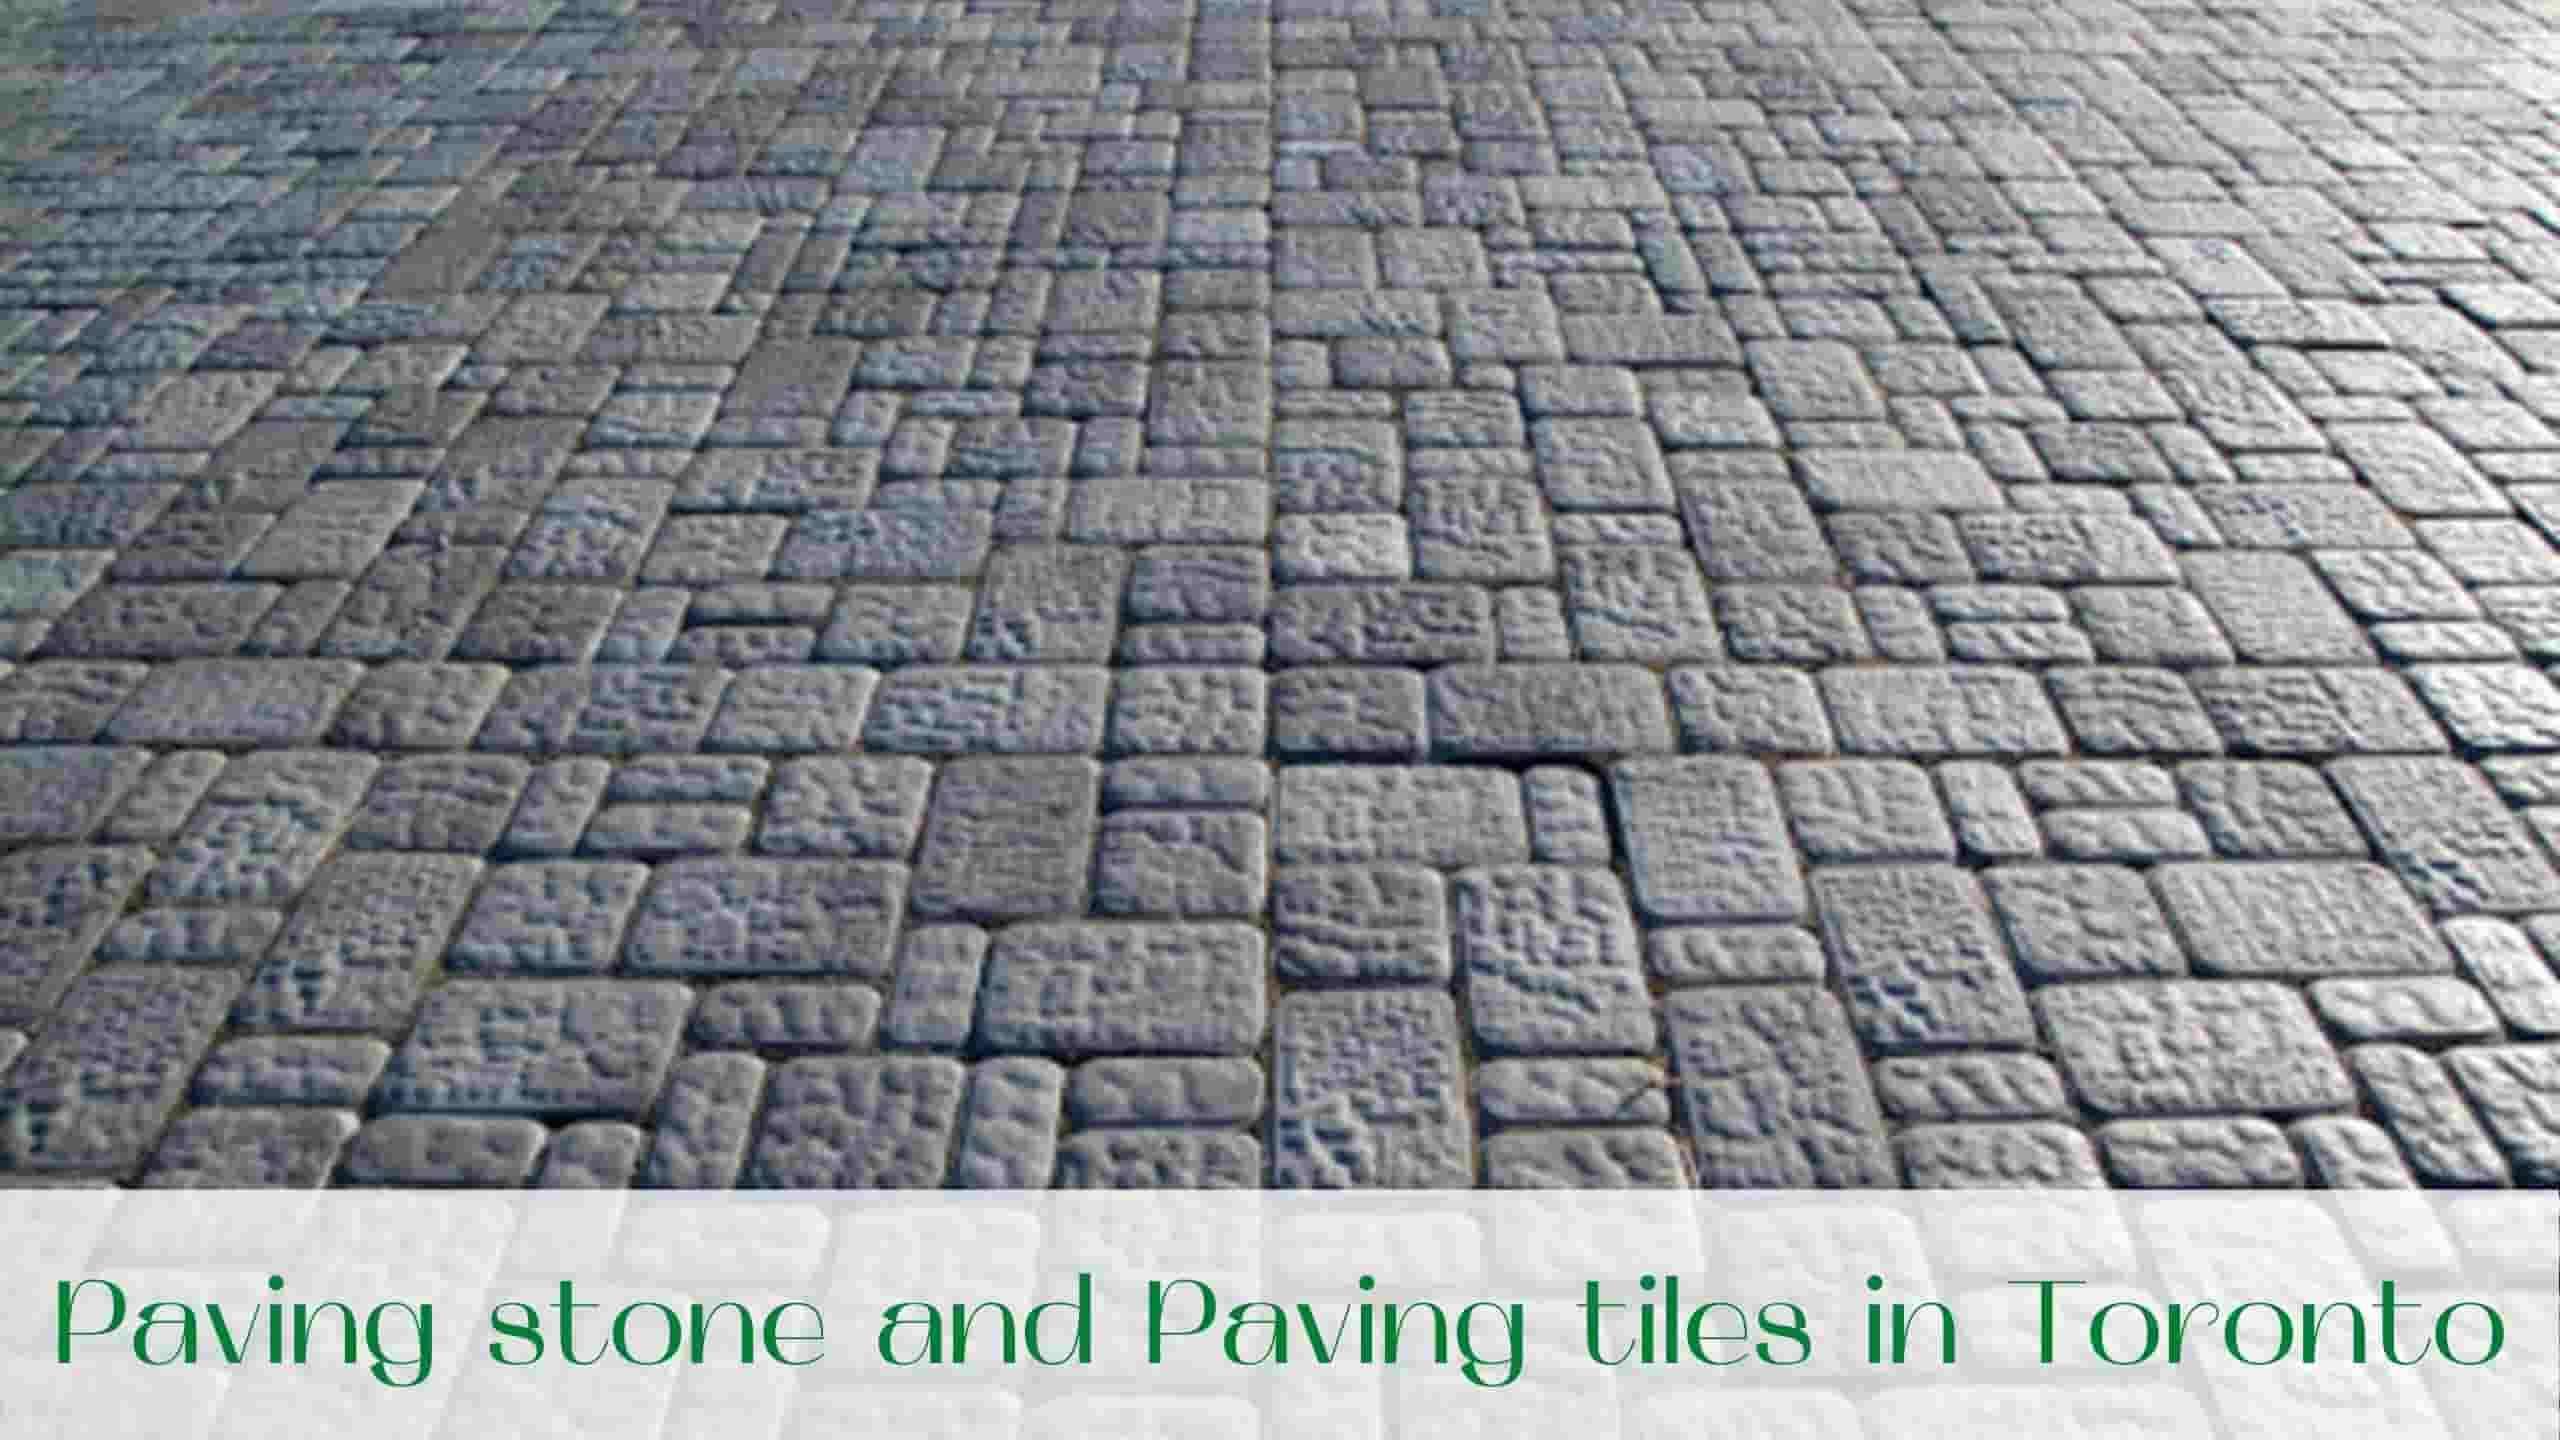 image-paving-stone-and-paving-tiles-in-Toronto